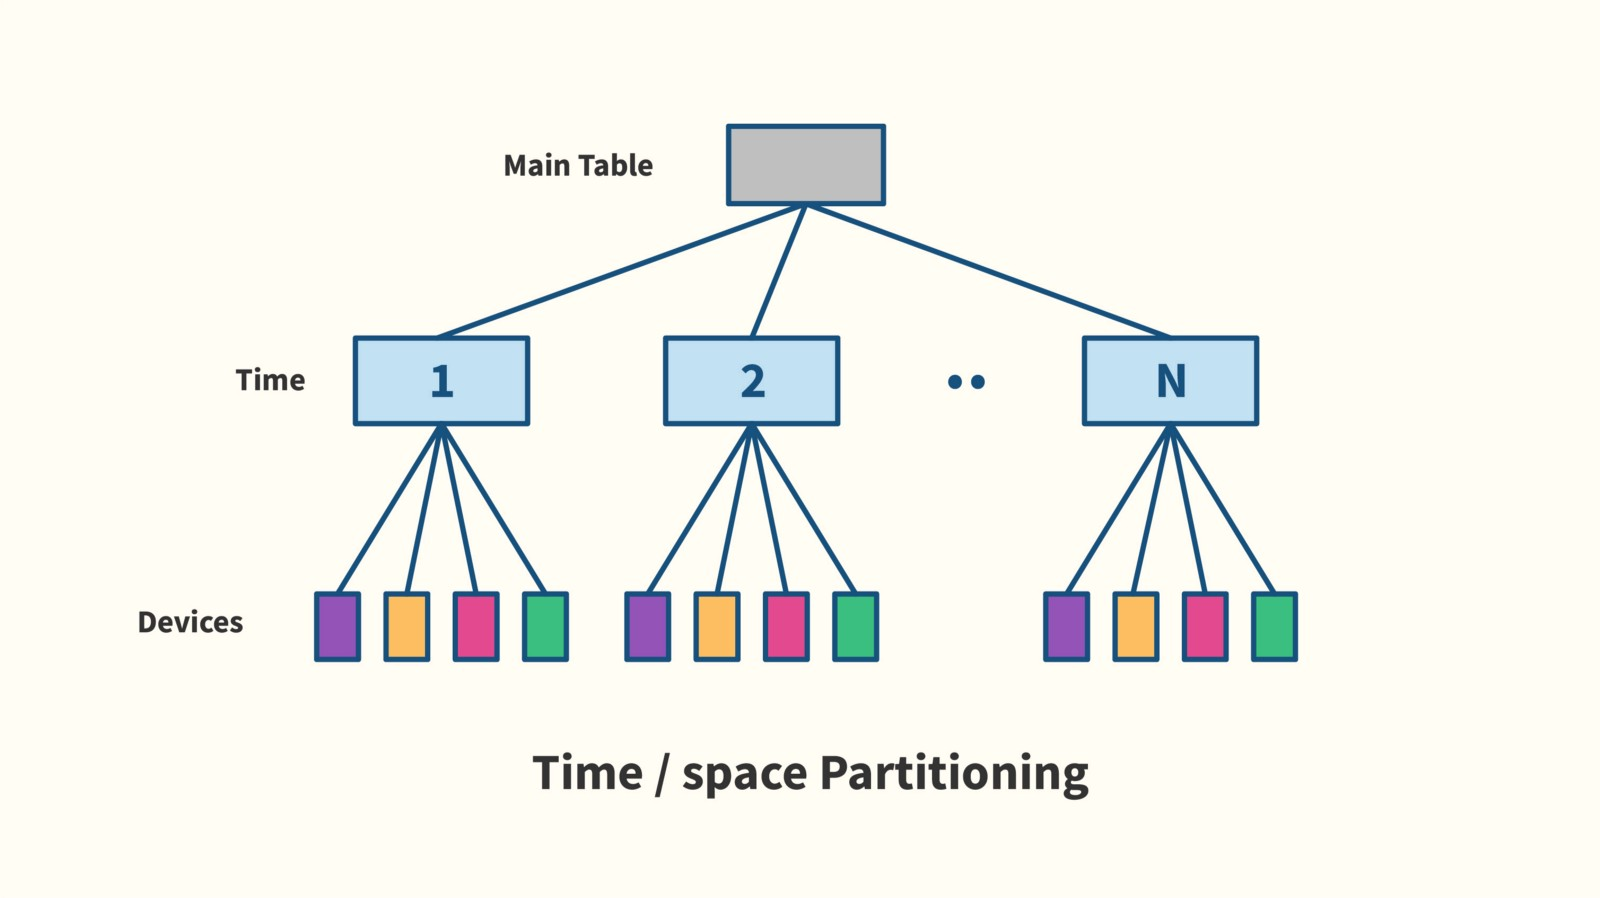 Problems With Postgresql 10 For Time Series Data Timescale And Split As Shown On A Timespace Diagram The Space Partitioning Using Pg10